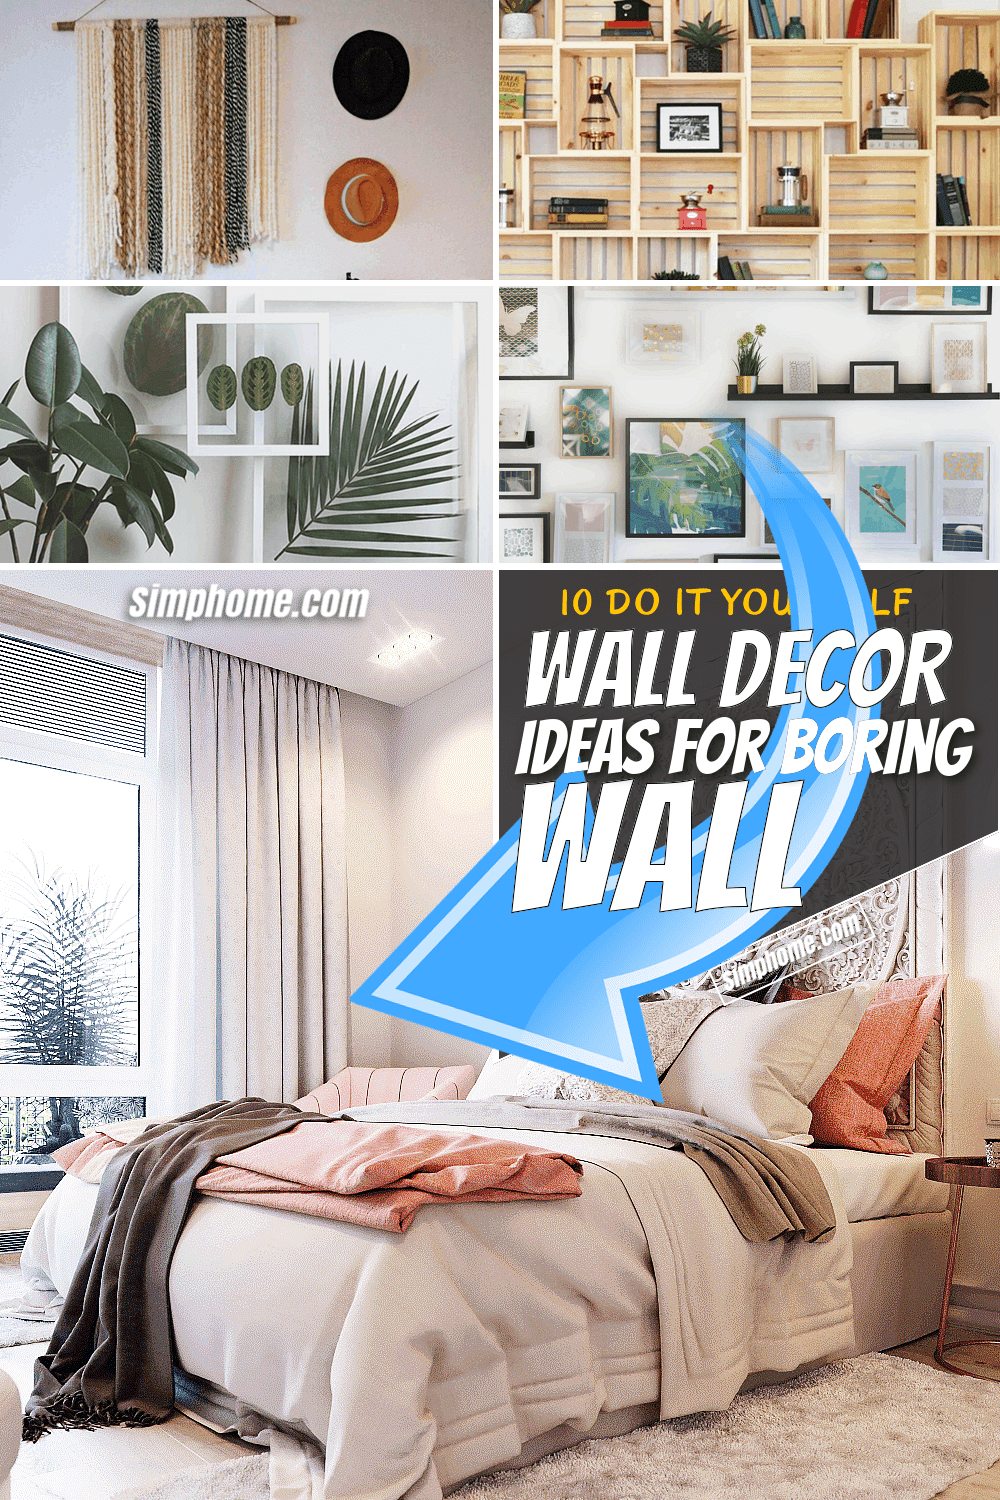 10 Wall Decor Ideas for Boring Walls via SIMPHOME.COM Featured Pinterest